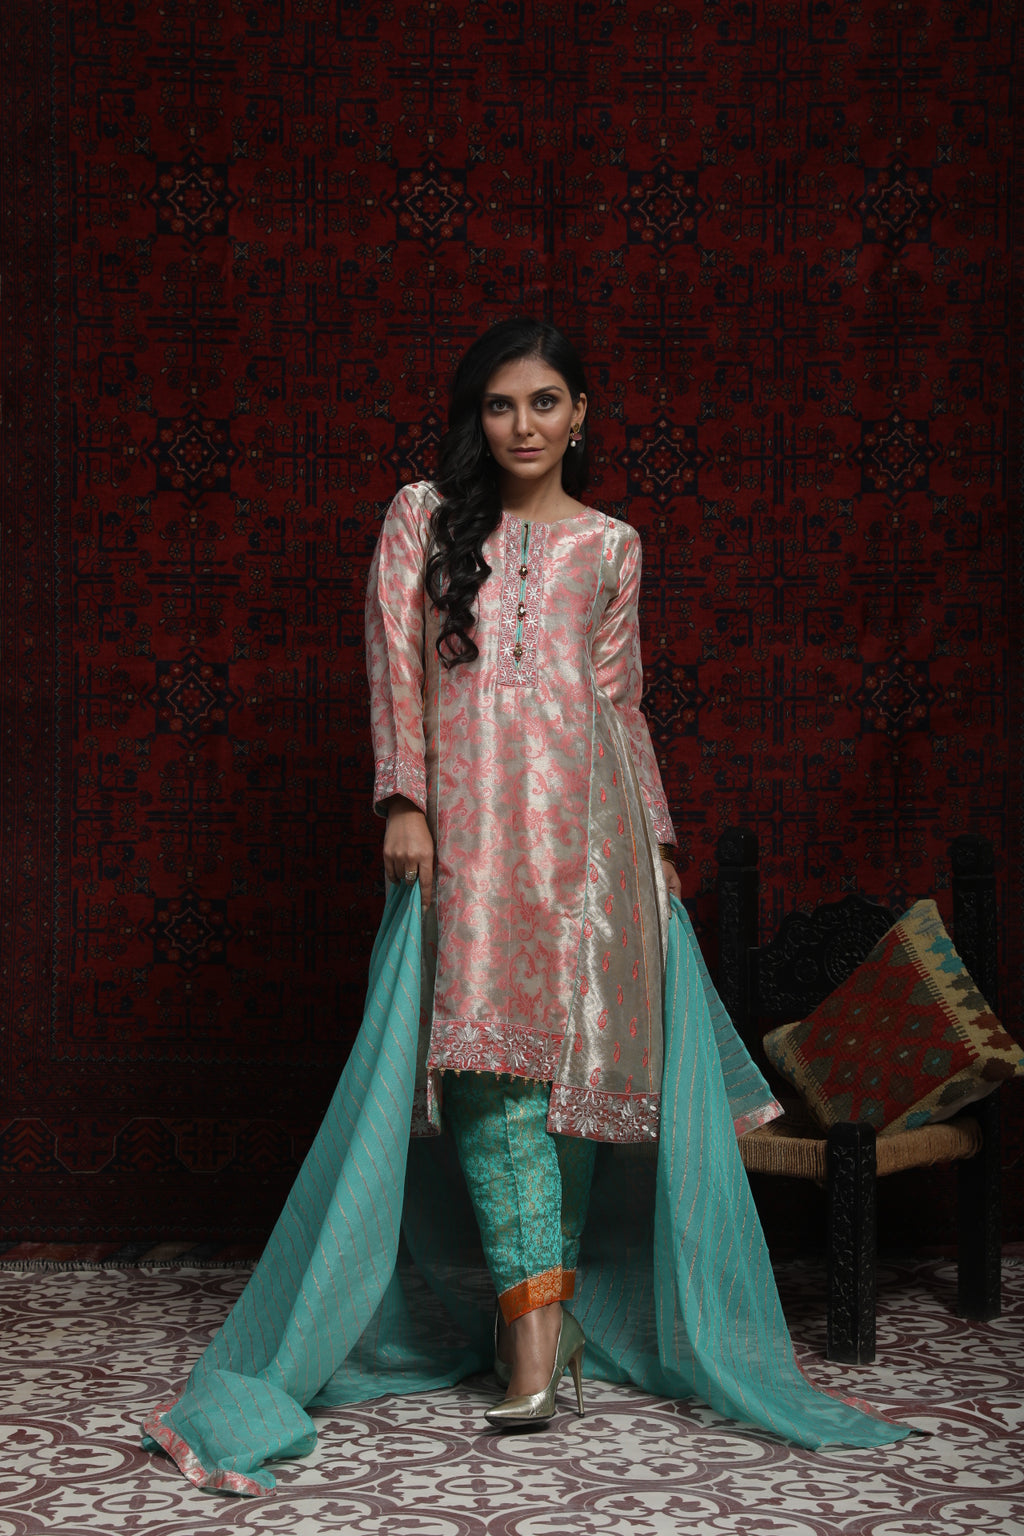 LDD-01692 | Metallic Beige & Sea Green | Formal 3 Piece Suit  | Banarsi Jacquard (Metallic)